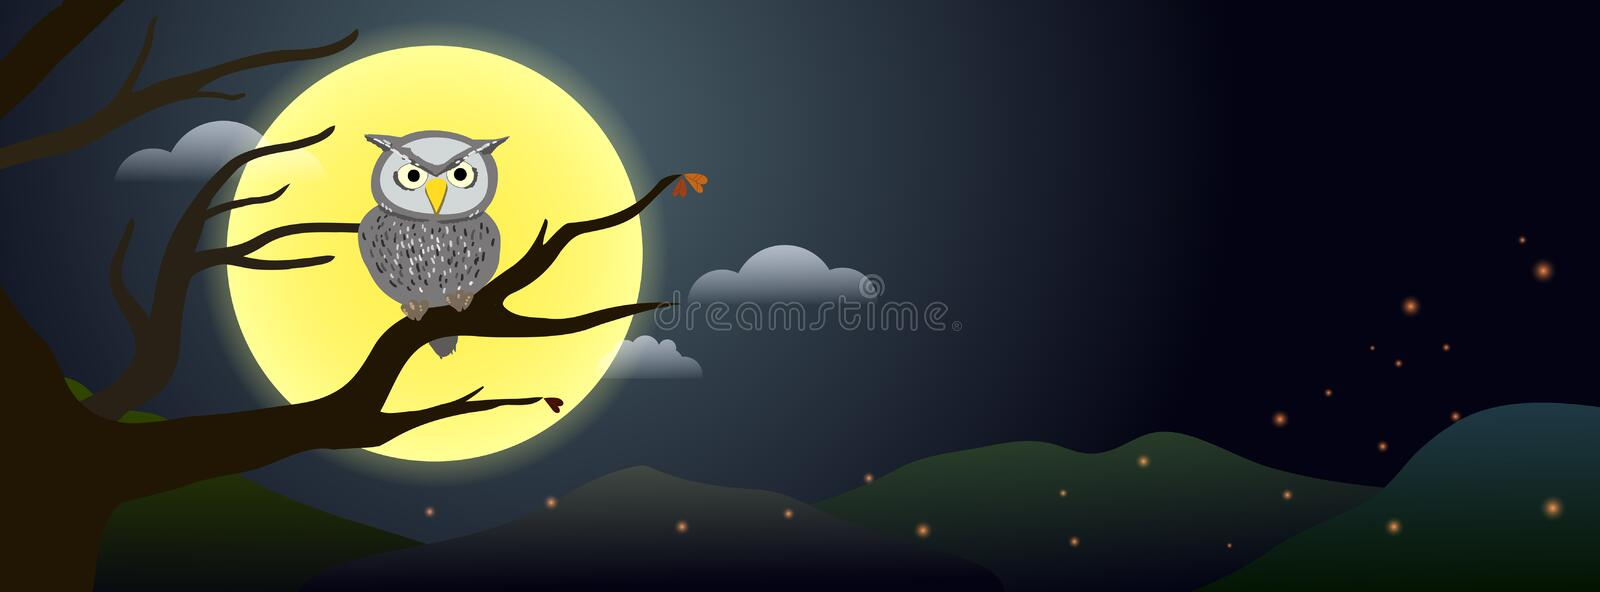 Spooky night owl resting on dead tree branch with full moon in the background stock illustration